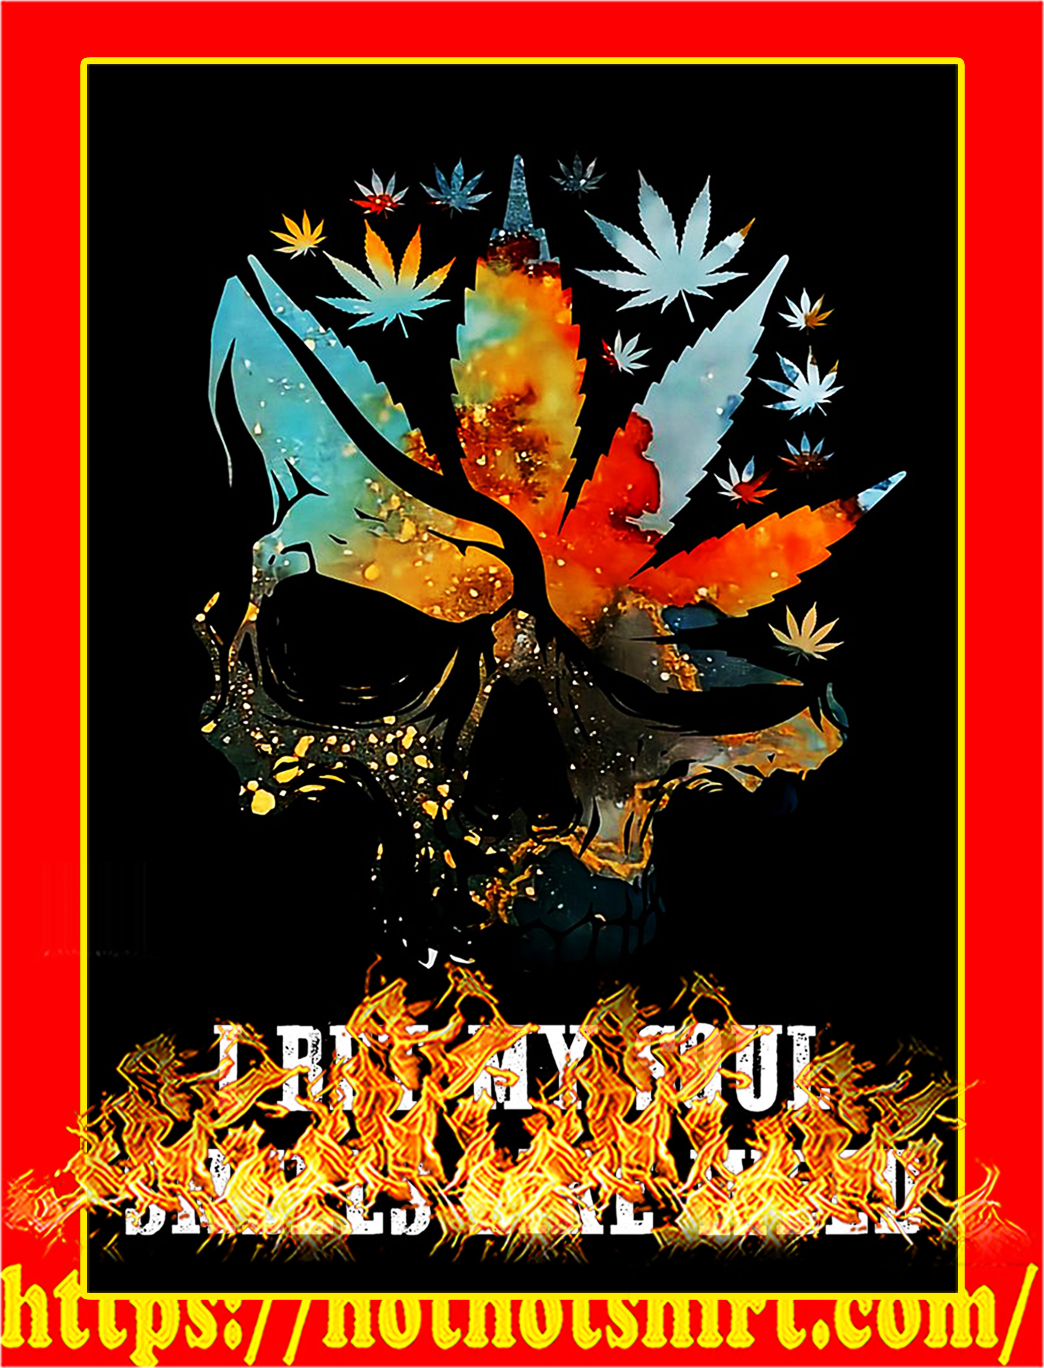 Skull I bet my soul smells like weed poster - A1